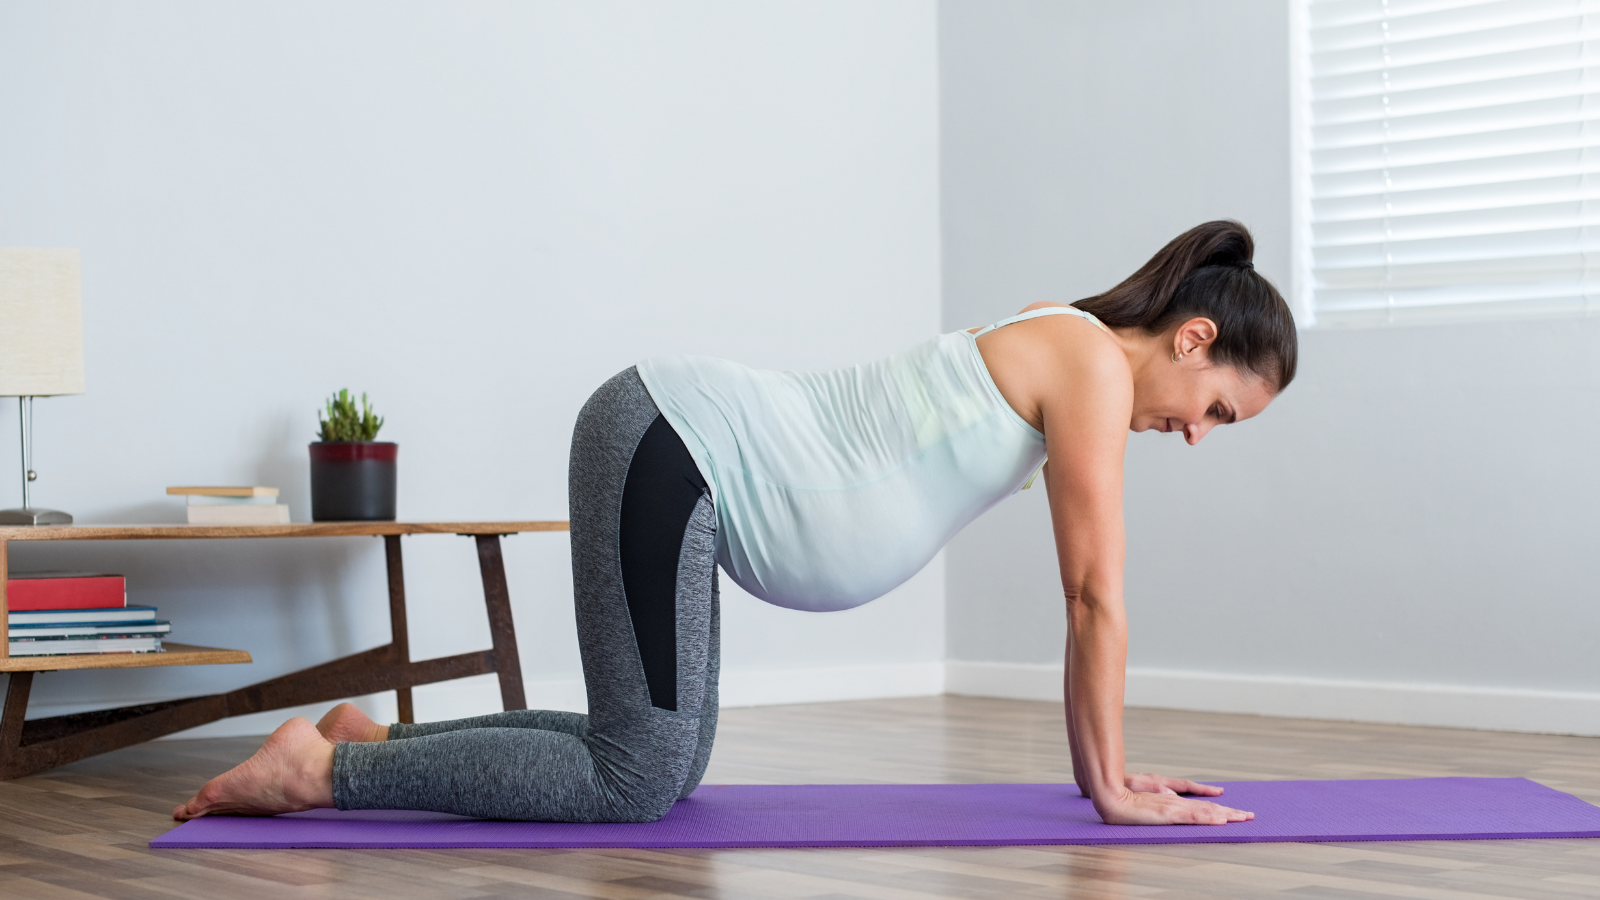 Pregnant young woman in Table Top Pose position practicing prenatal yoga to strengthen the pelvic floor